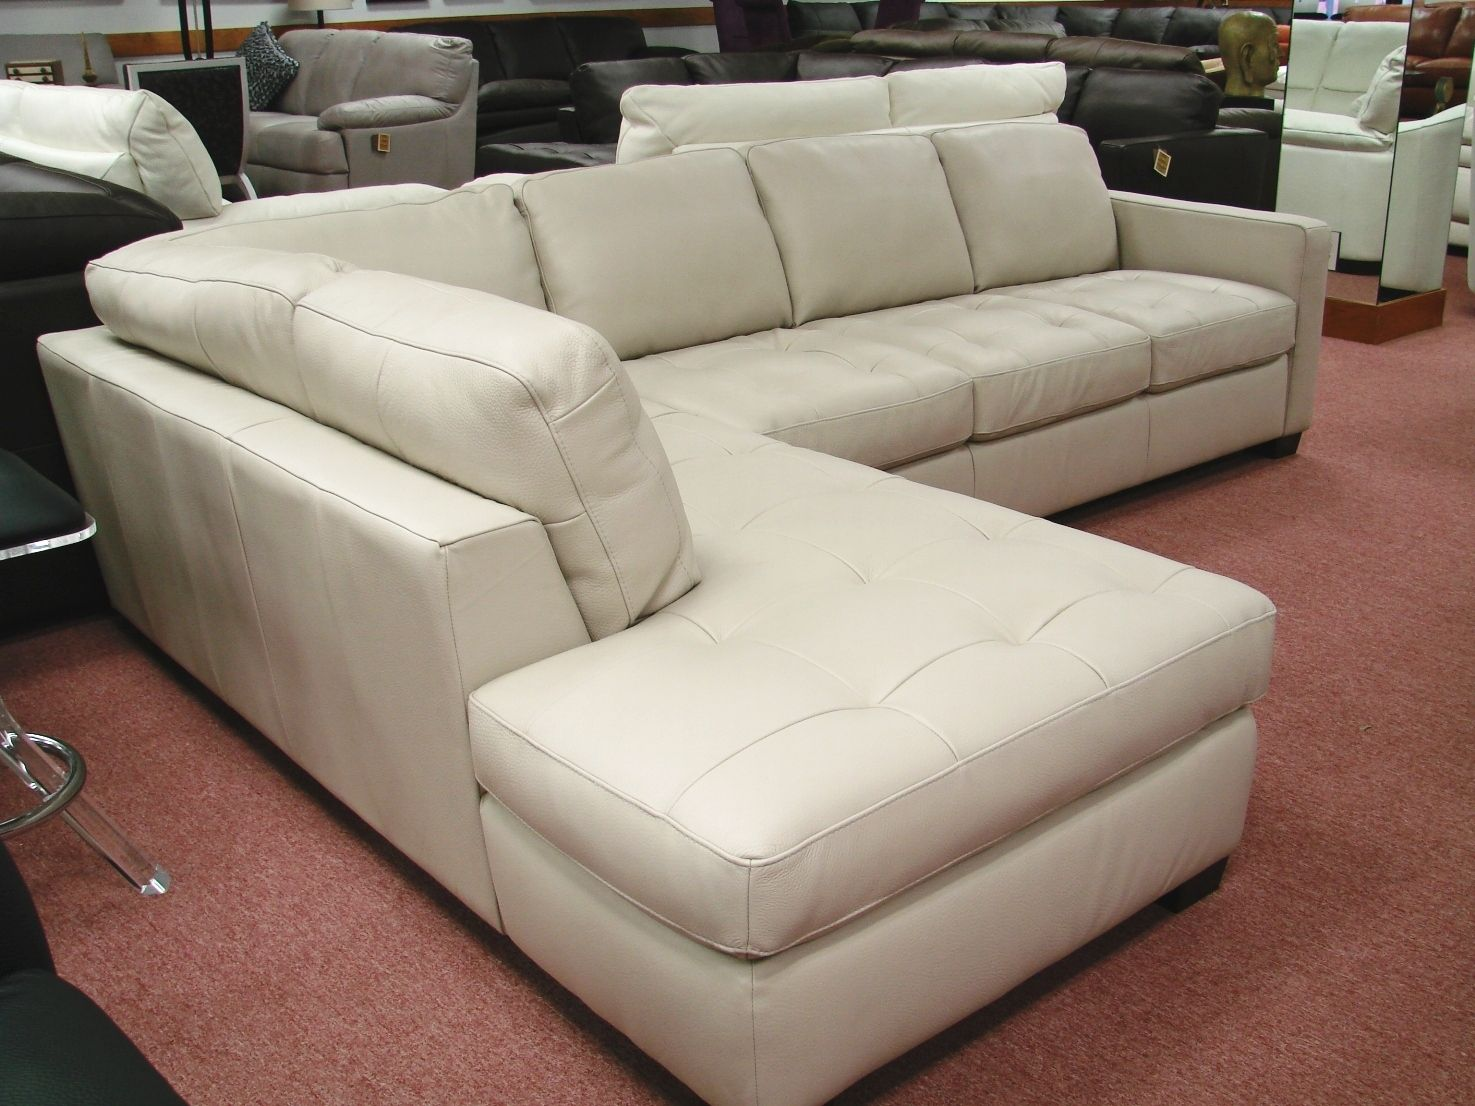 Traditional Style natuzzi sectional sofa Moooi Brand : natuzzi denver sectional - Sectionals, Sofas & Couches